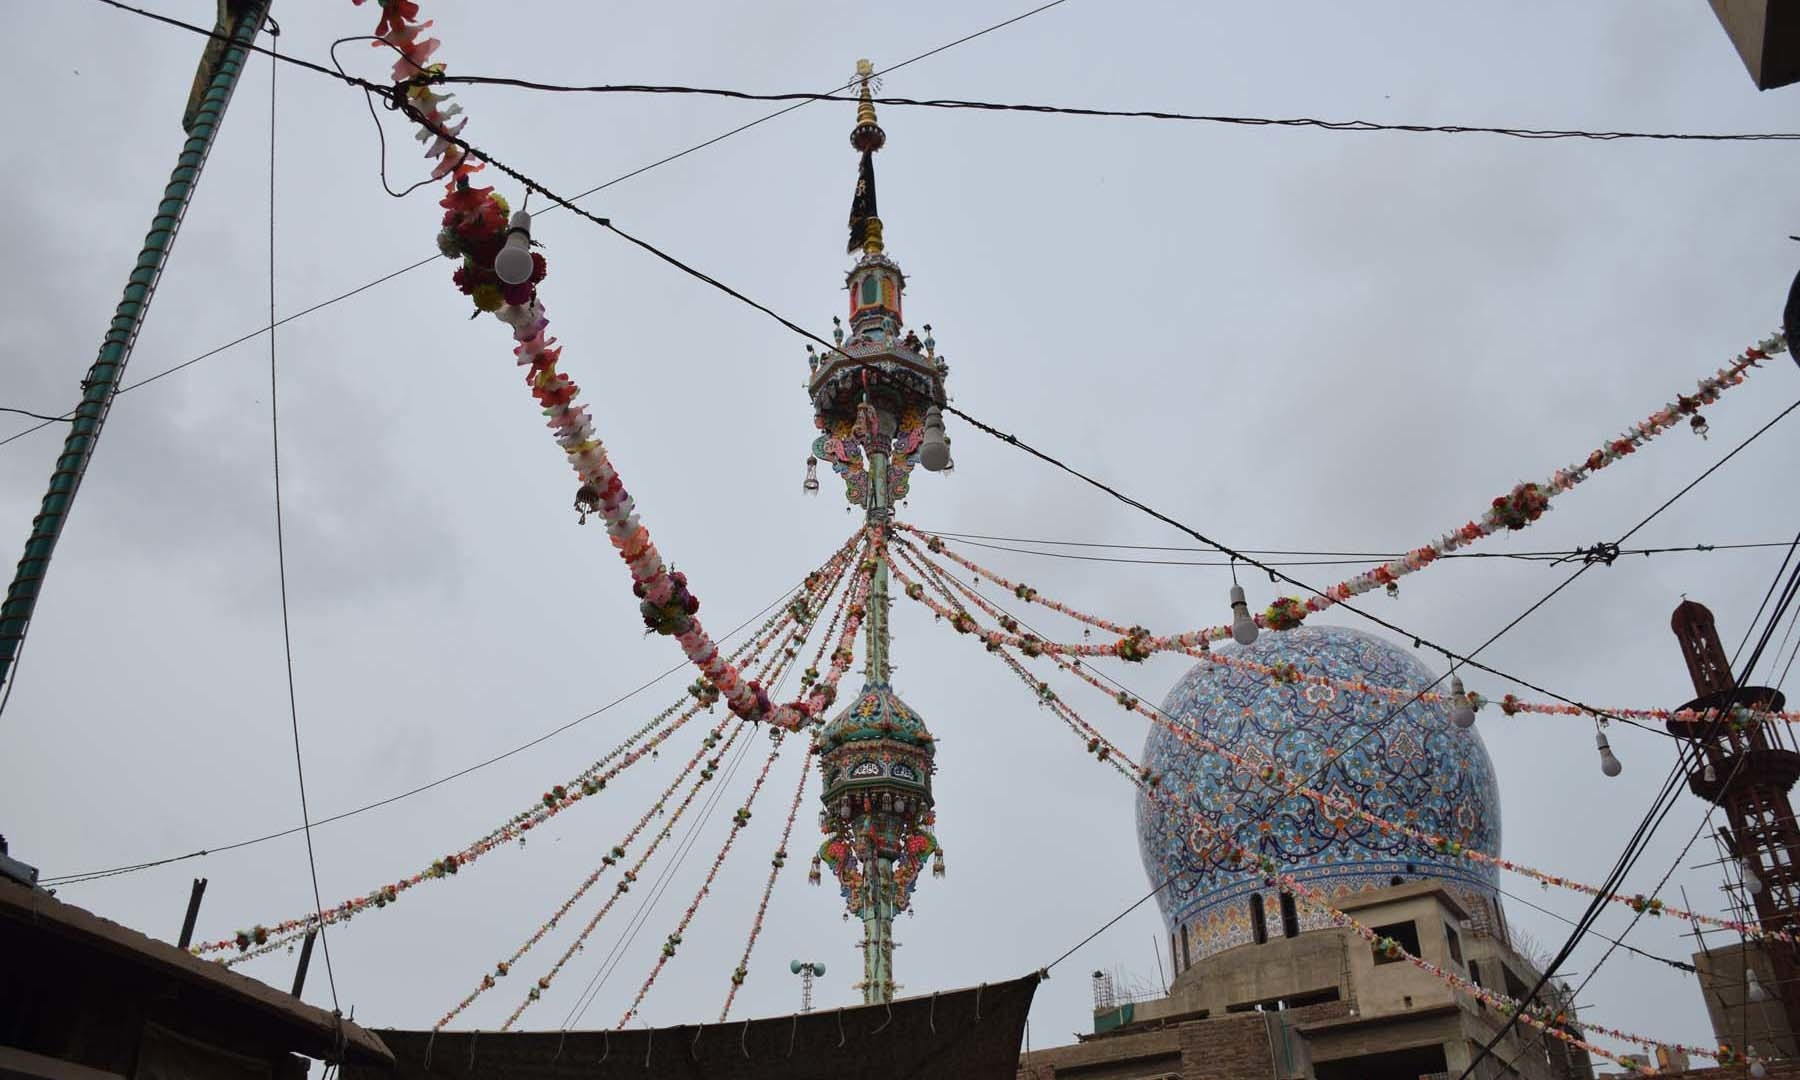 A view of around 90 feet high alam at Qadam Gah Maula Ali. Qadam Gah Maula Ali is a place where the *musallah* (prayer mat of stone with imprints of Hazrat Ali's (RA) forehead, hands, knees and feet in the position of prostration) is kept. It was said to be gifted to Talpur dynasty ruler Ghulam Ali by Iranian king Shah Kachaar in 1803, according to Zawar Sattar Dars. — Umair Ali